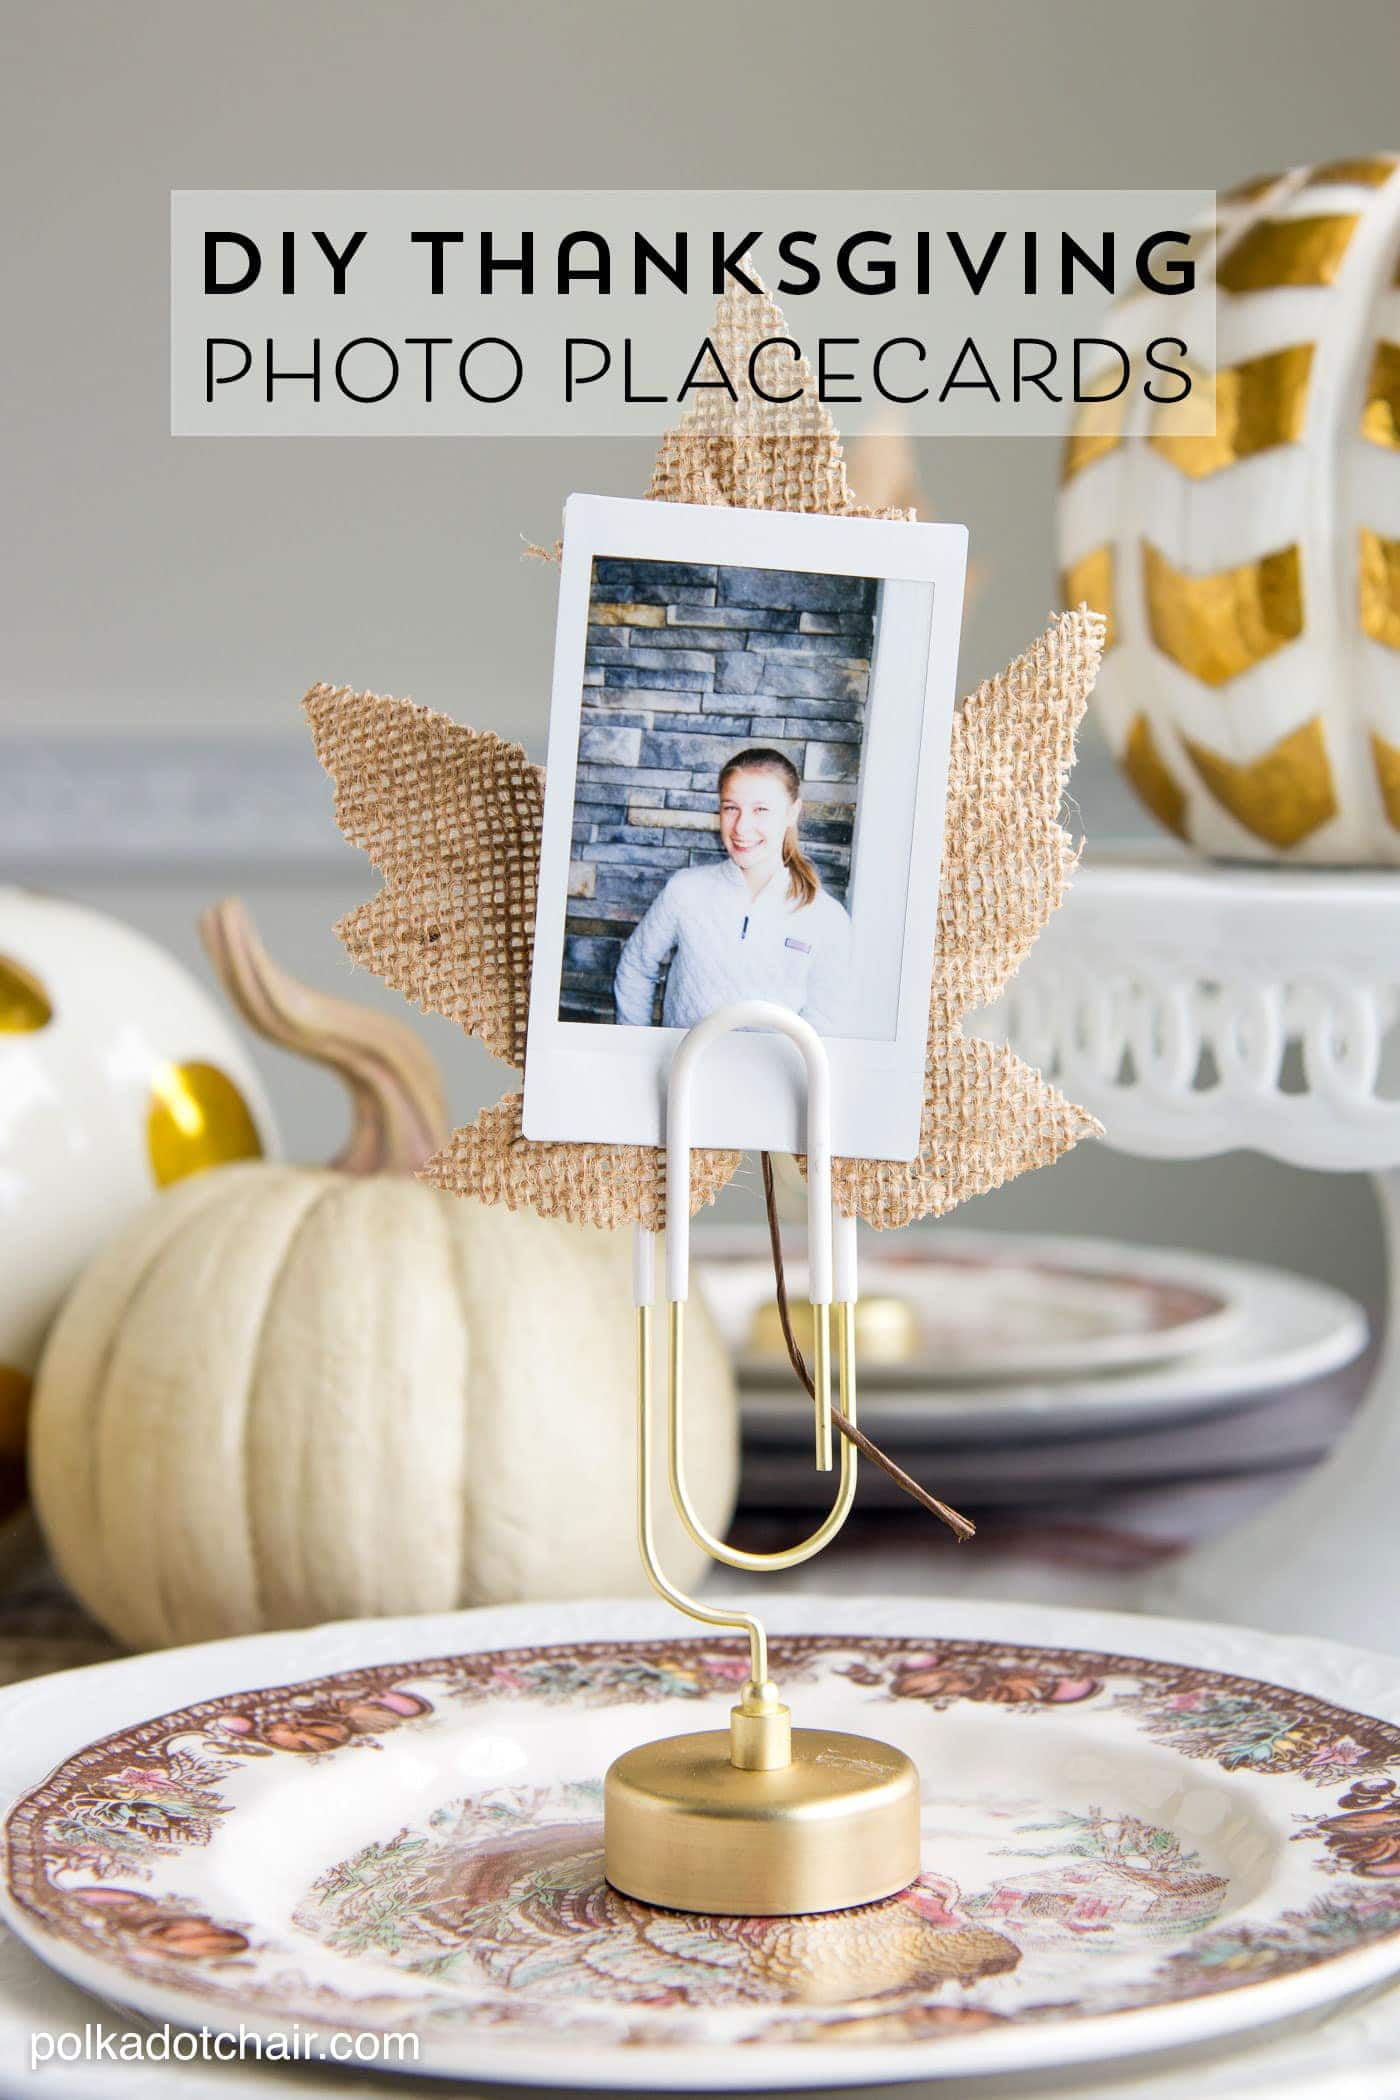 Cute idea for Thanksgiving Place Cards- DIY Photo place cards using Instax photos